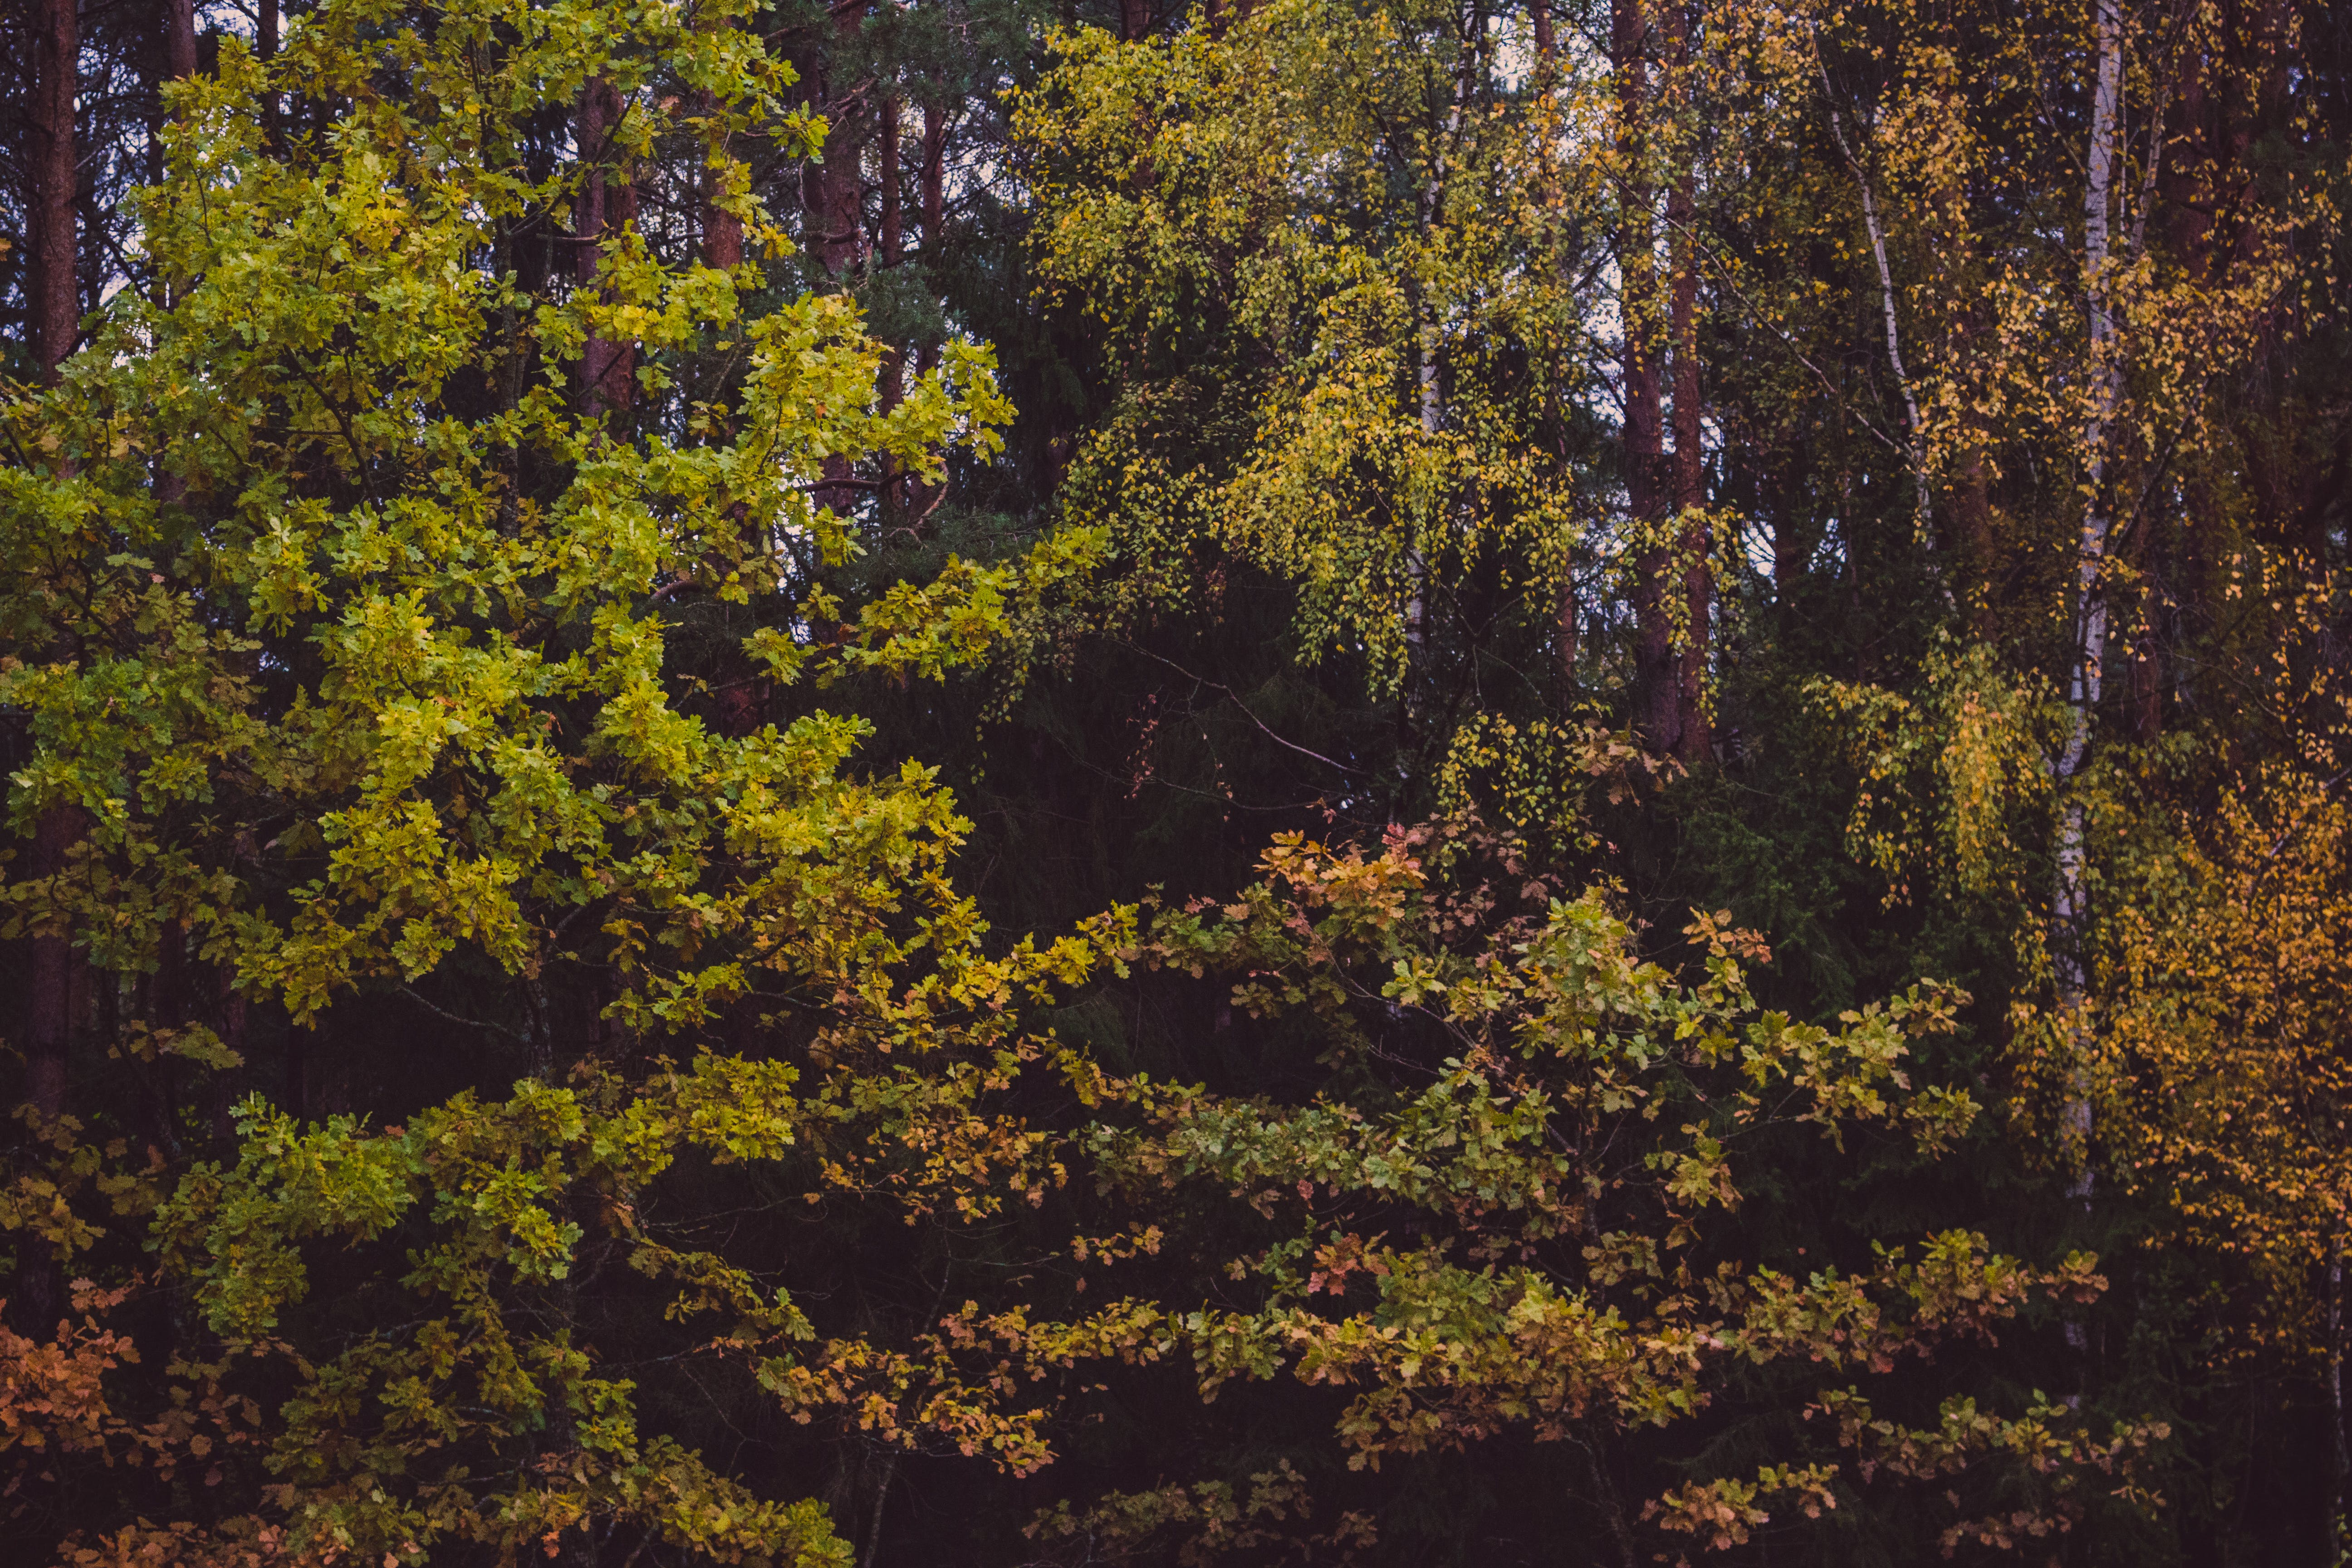 Free stock photo of nature, forest, trees, leaves